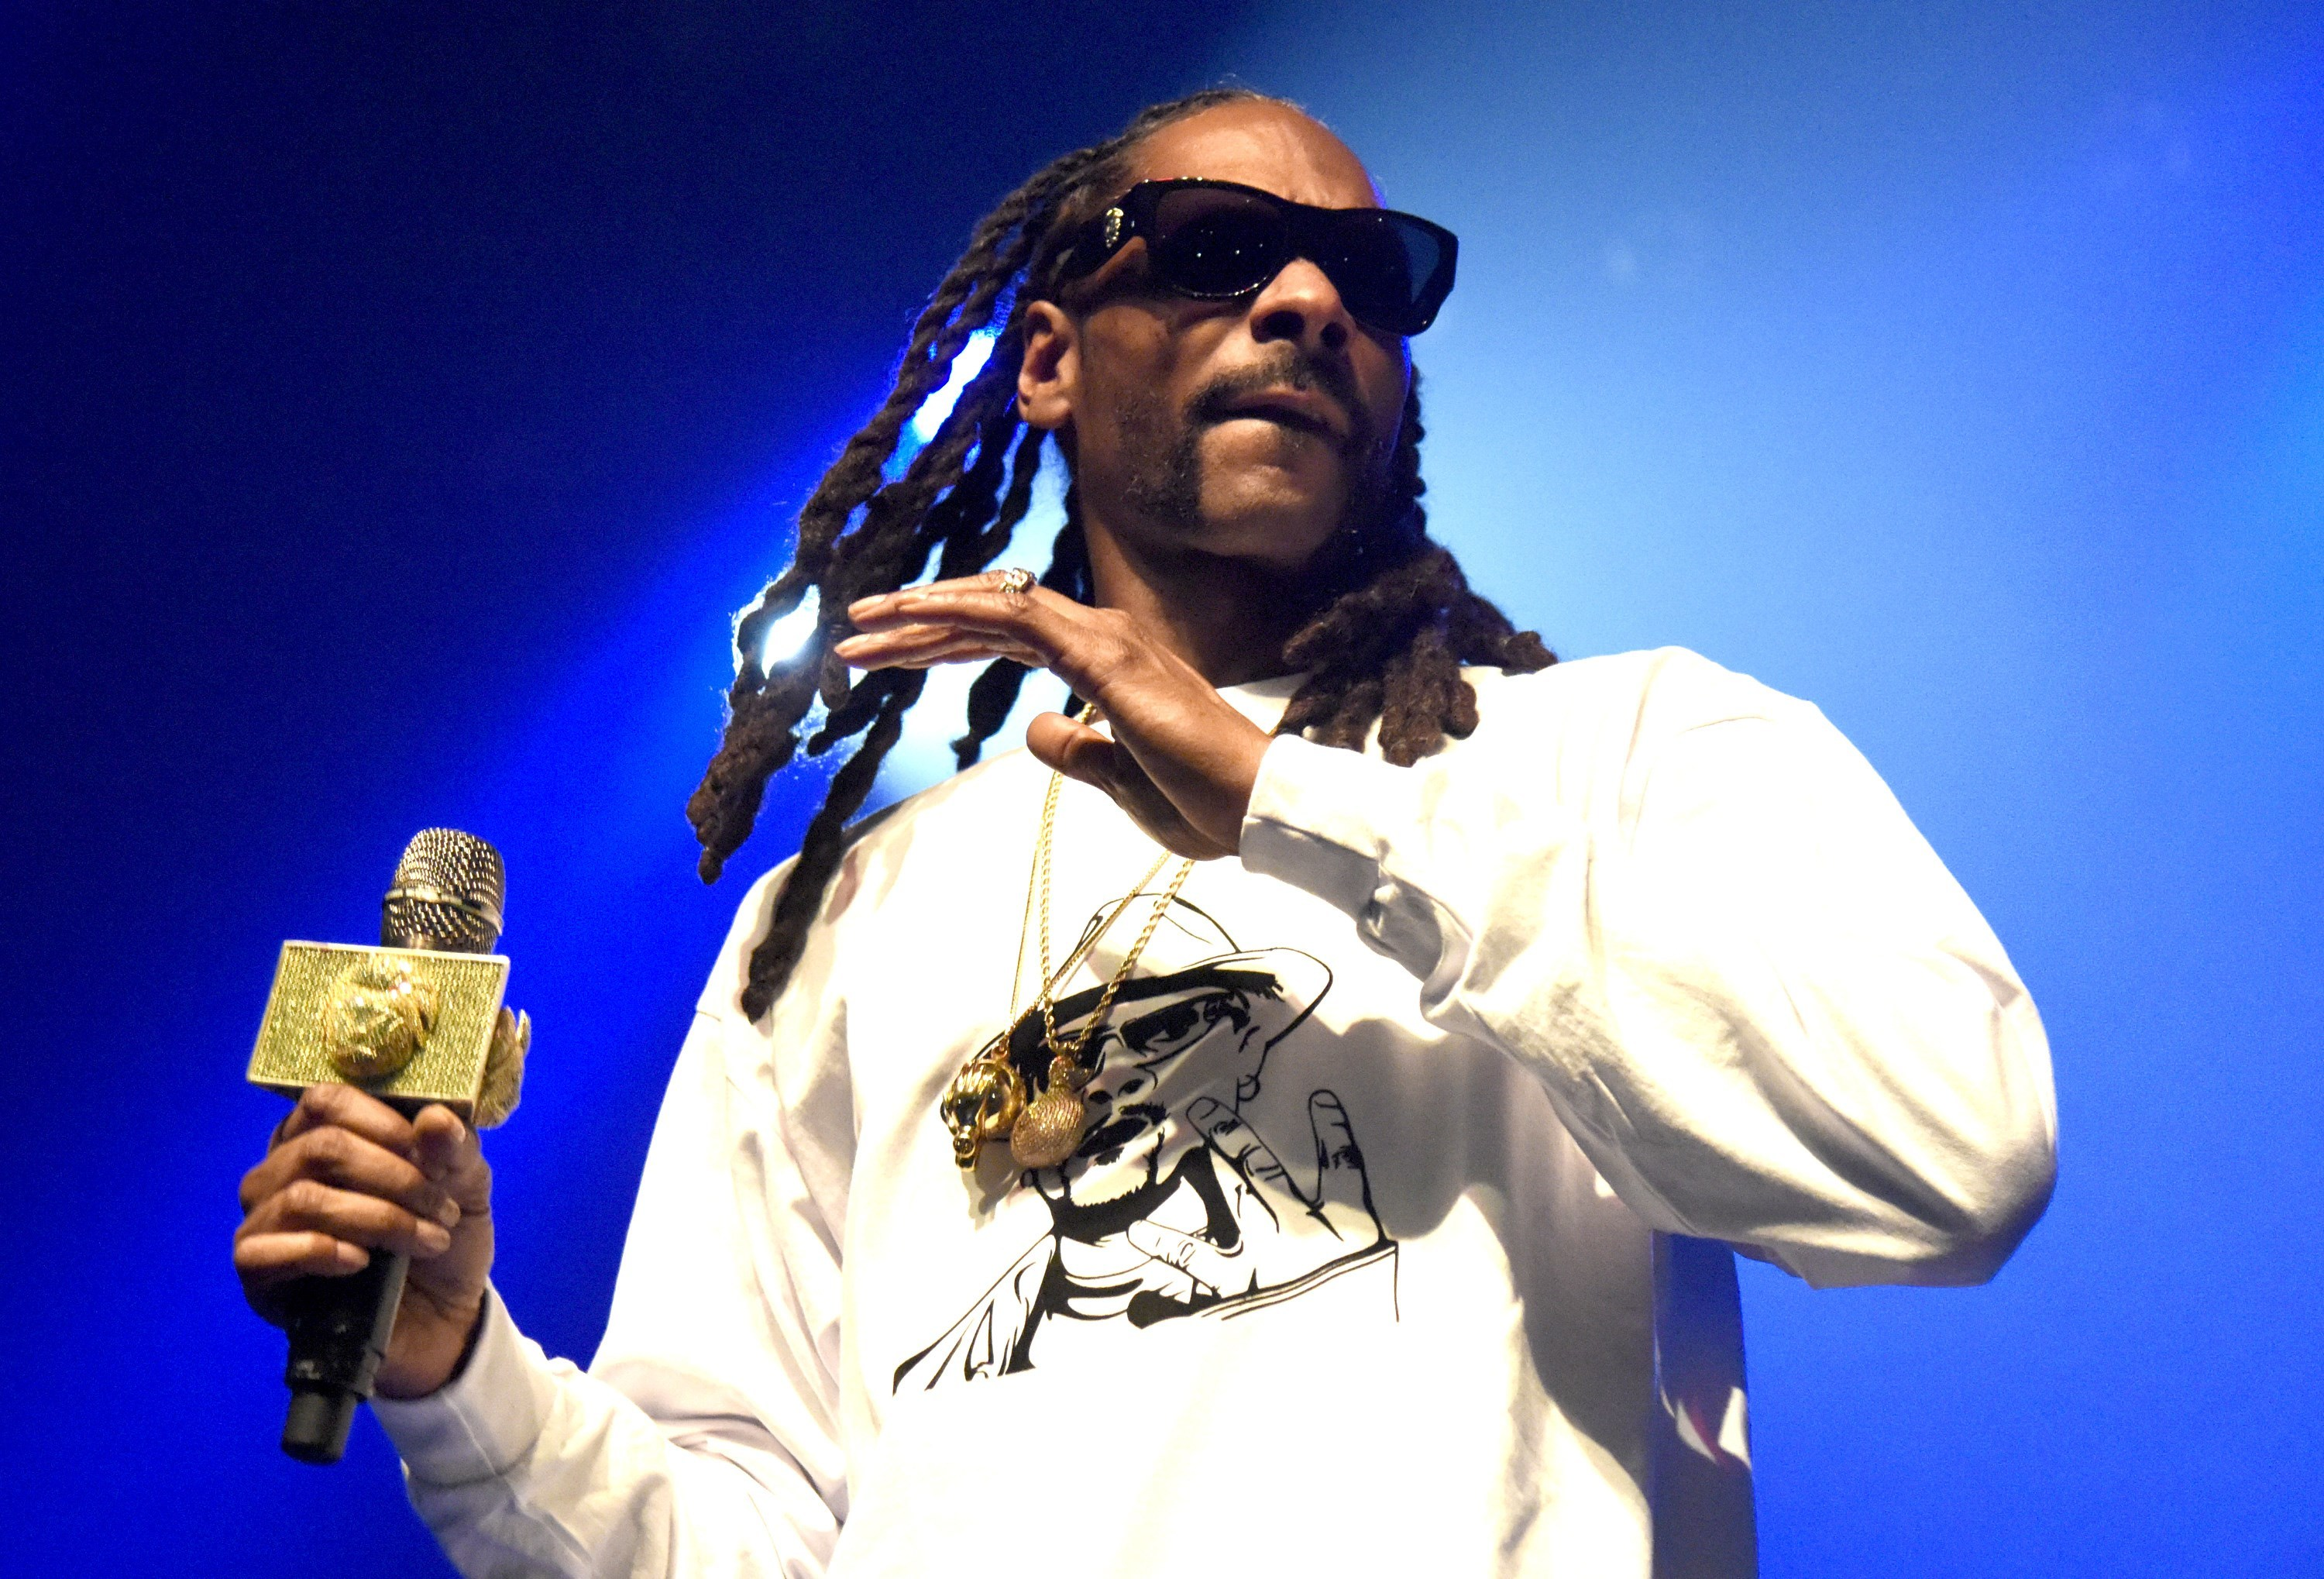 Dozens of fans removed from Snoop Dogg show for alcohol poisoning